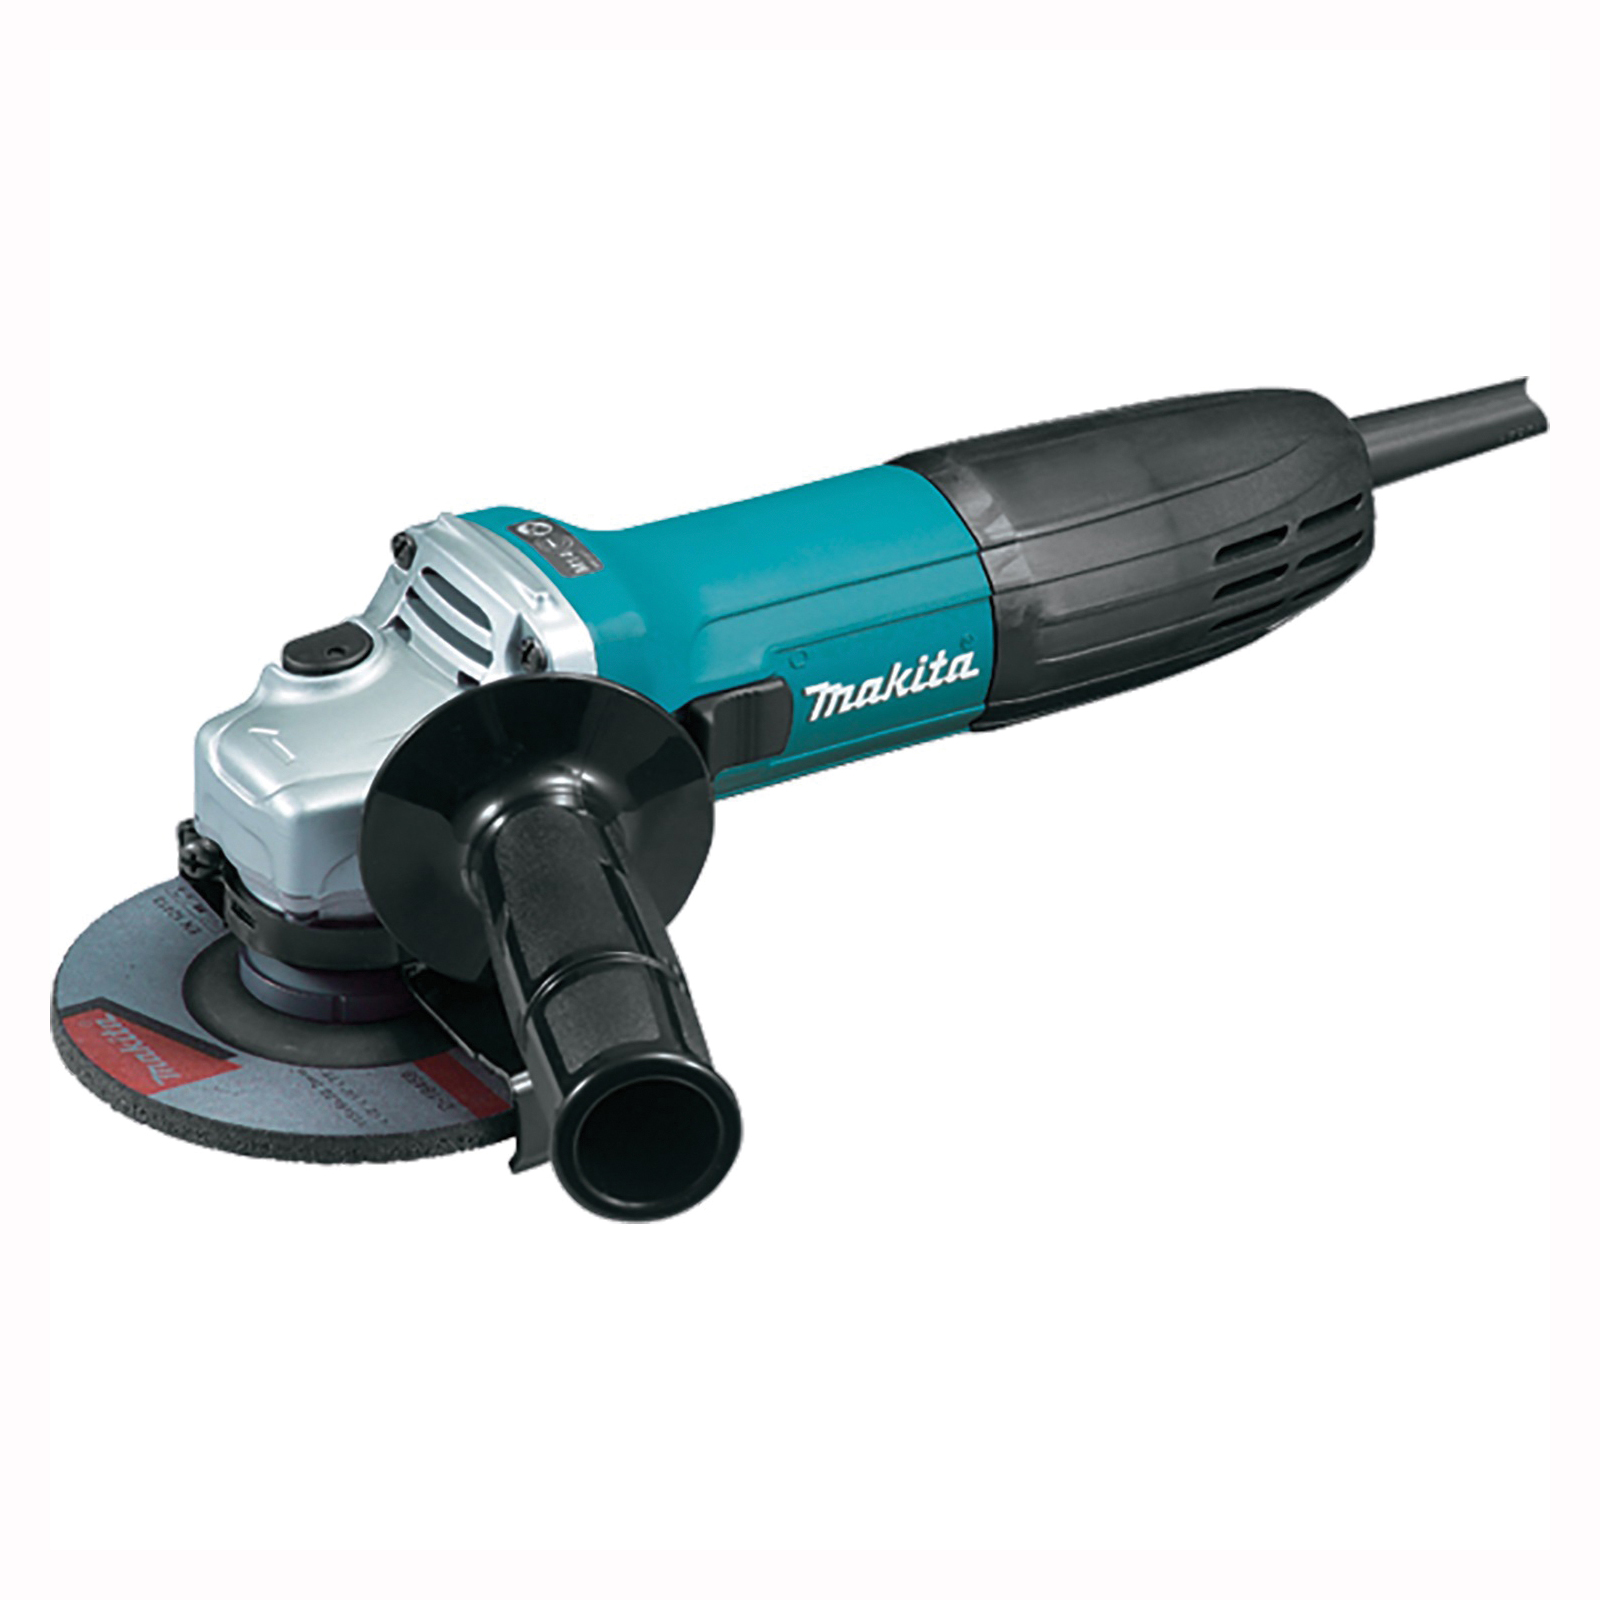 Picture of Makita GA4530X Angle Grinder, 120 V, 6 A, 4-1/2 in Dia Wheel, 11000 rpm Speed